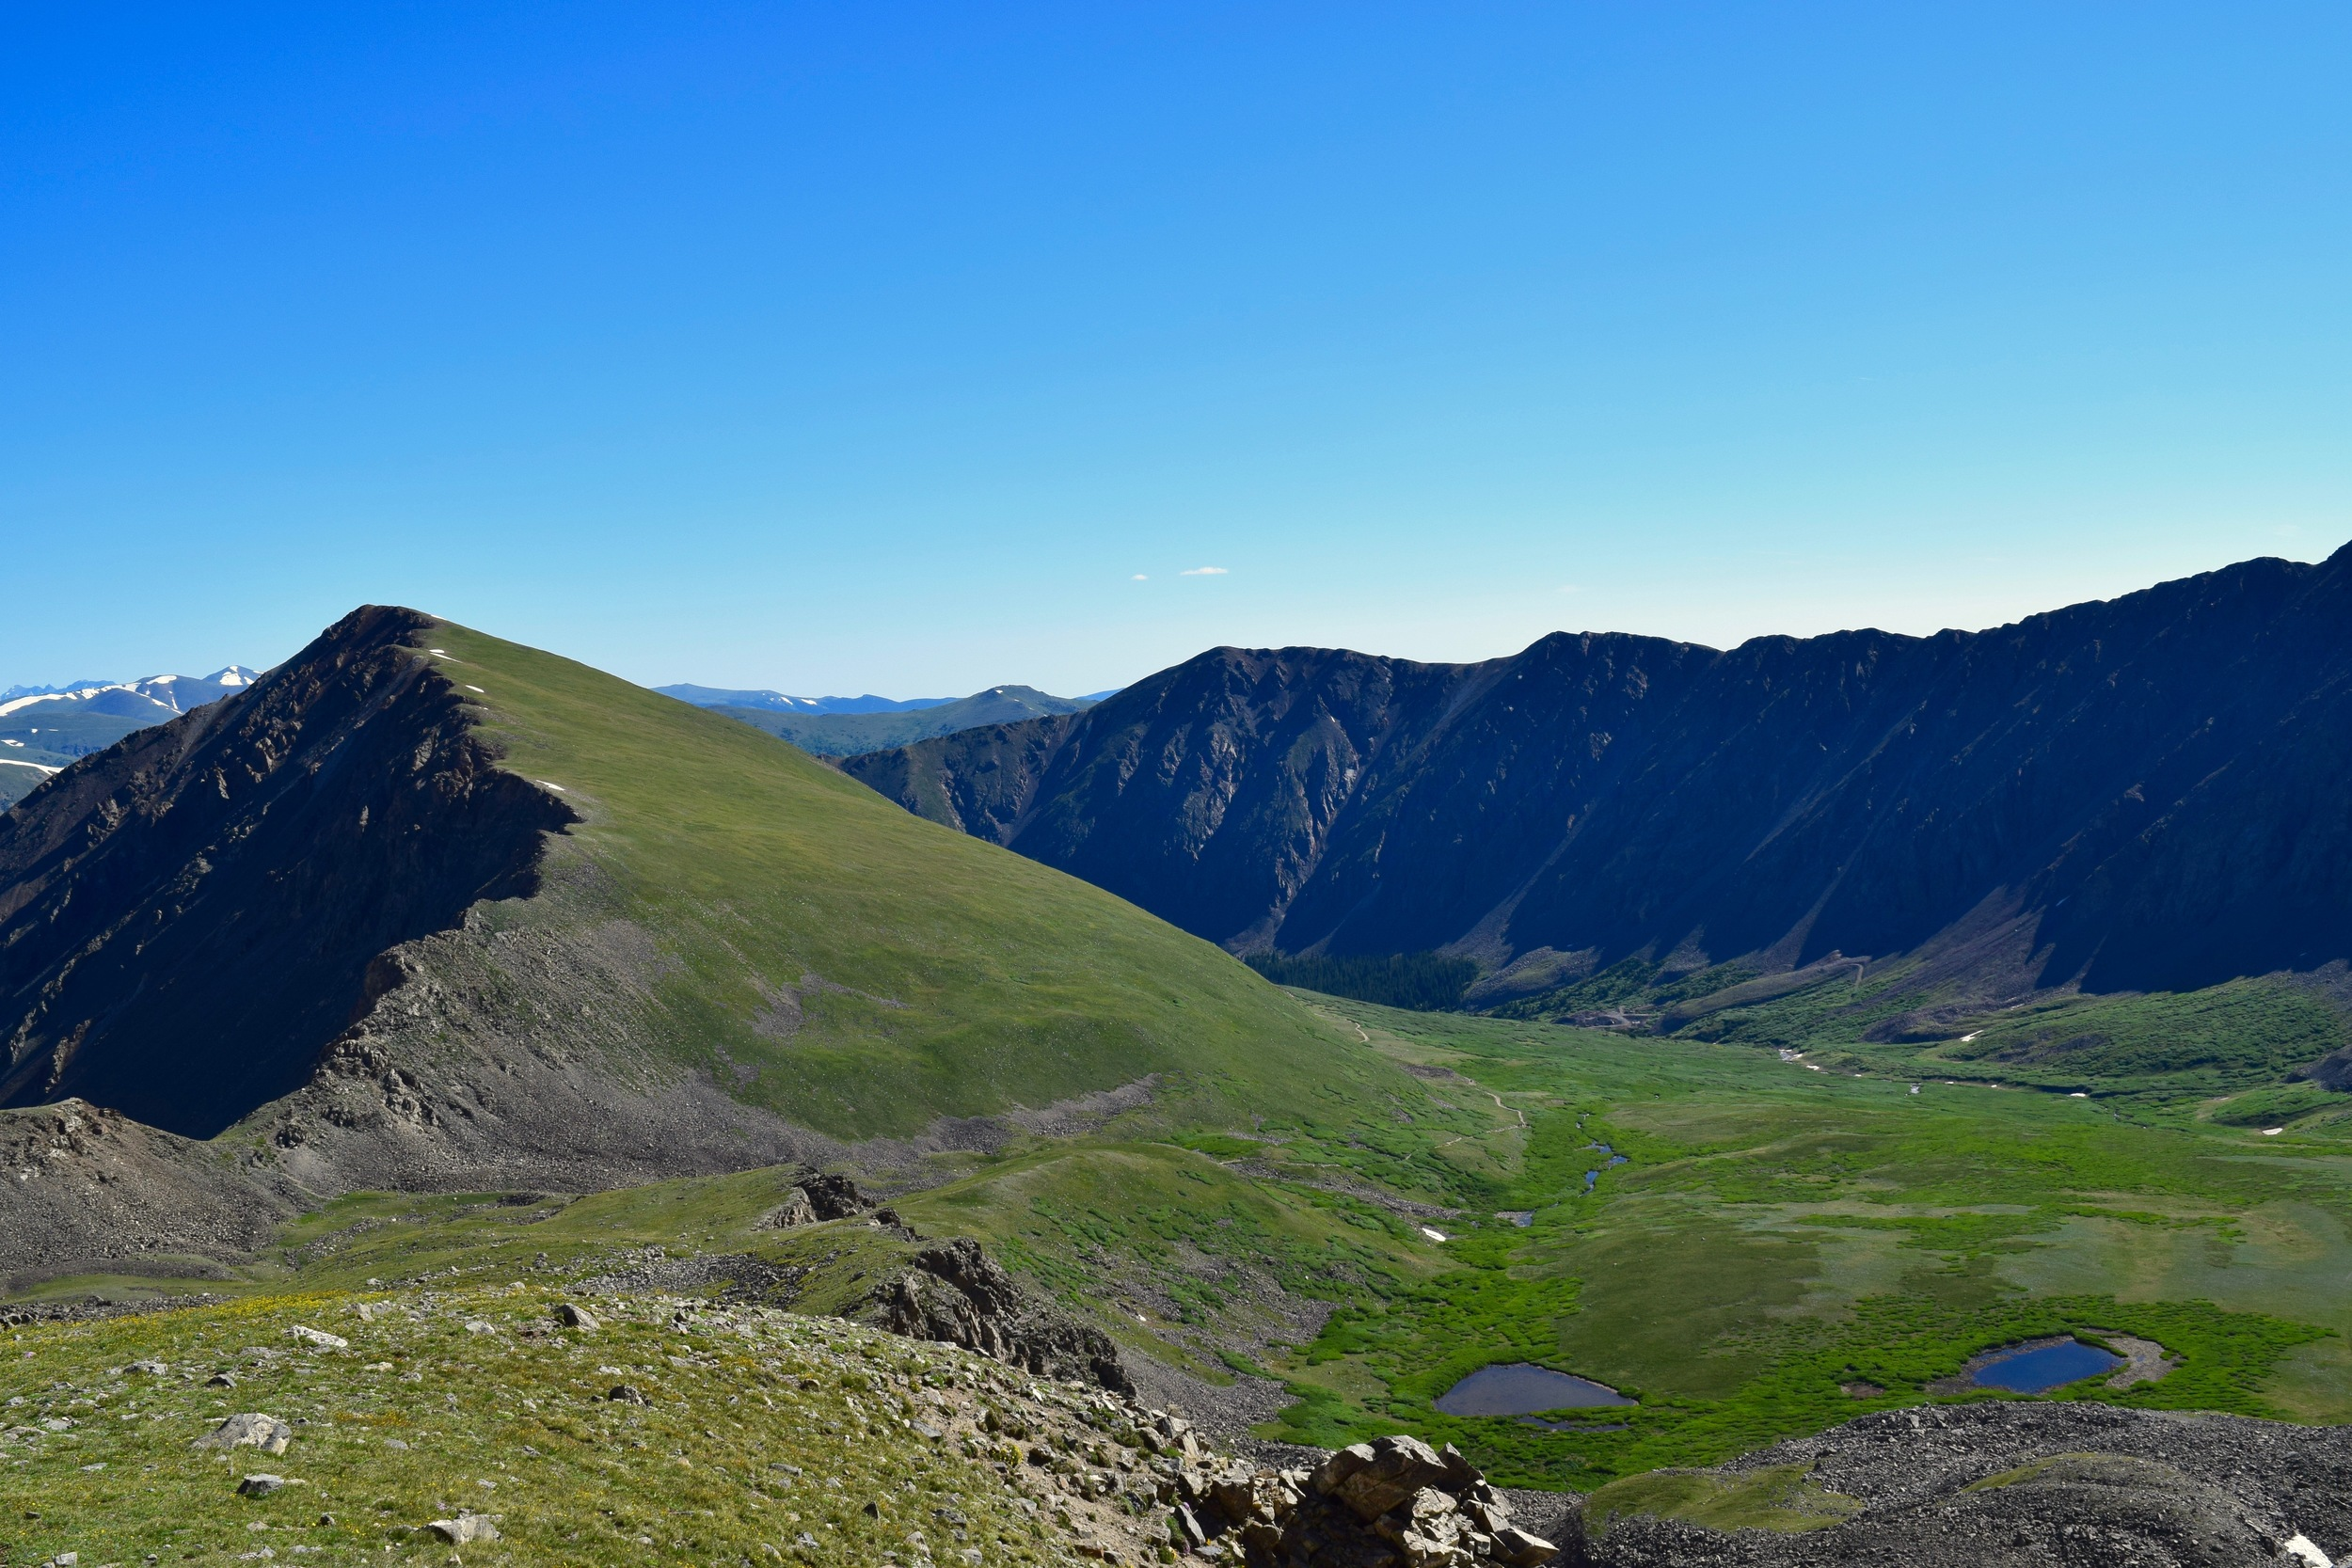 Looking East off of the trail up Grays Peak